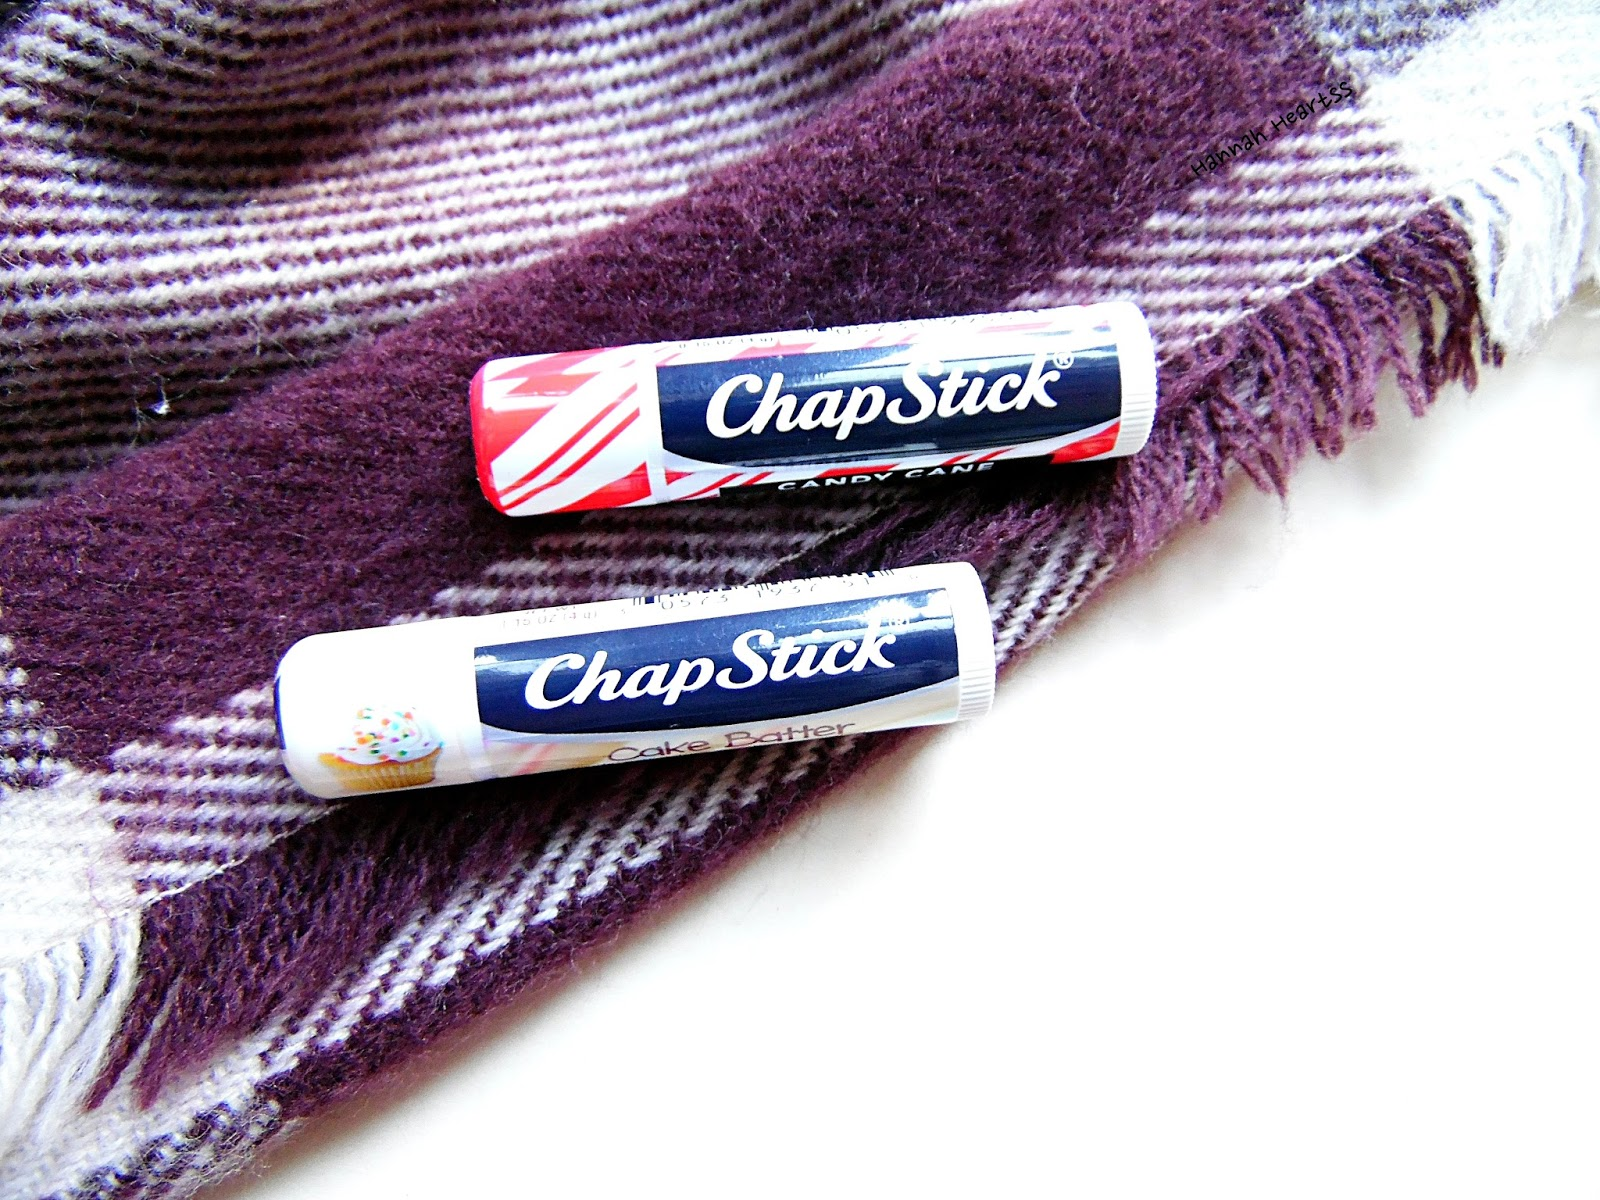 US Exclusive Chapsticks